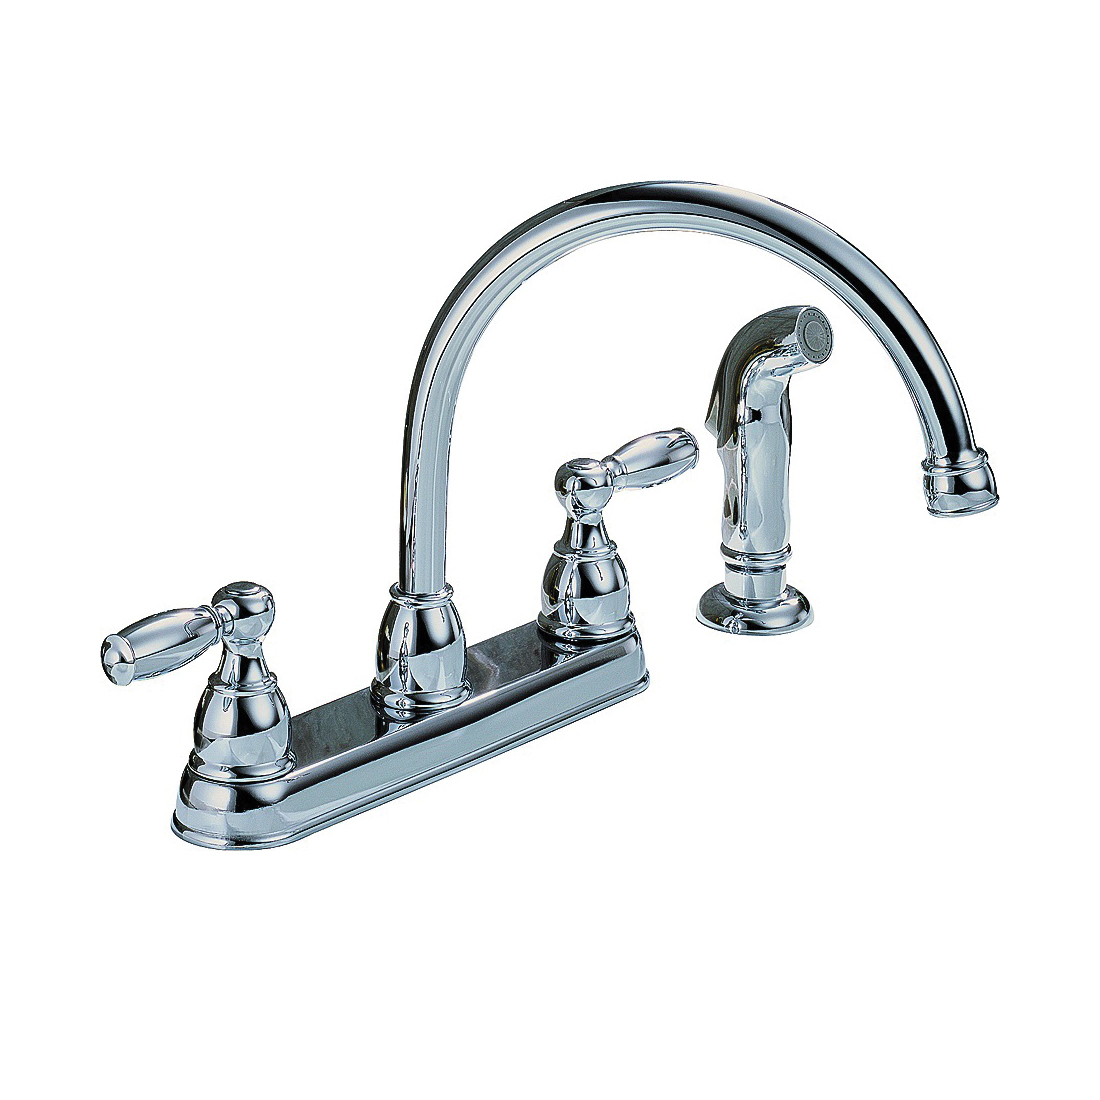 Picture of DELTA Peerless Claymore P299575LF Kitchen Faucet, 1.8 gpm, 2-Faucet Handle, Chrome, Deck Mounting, Lever Handle